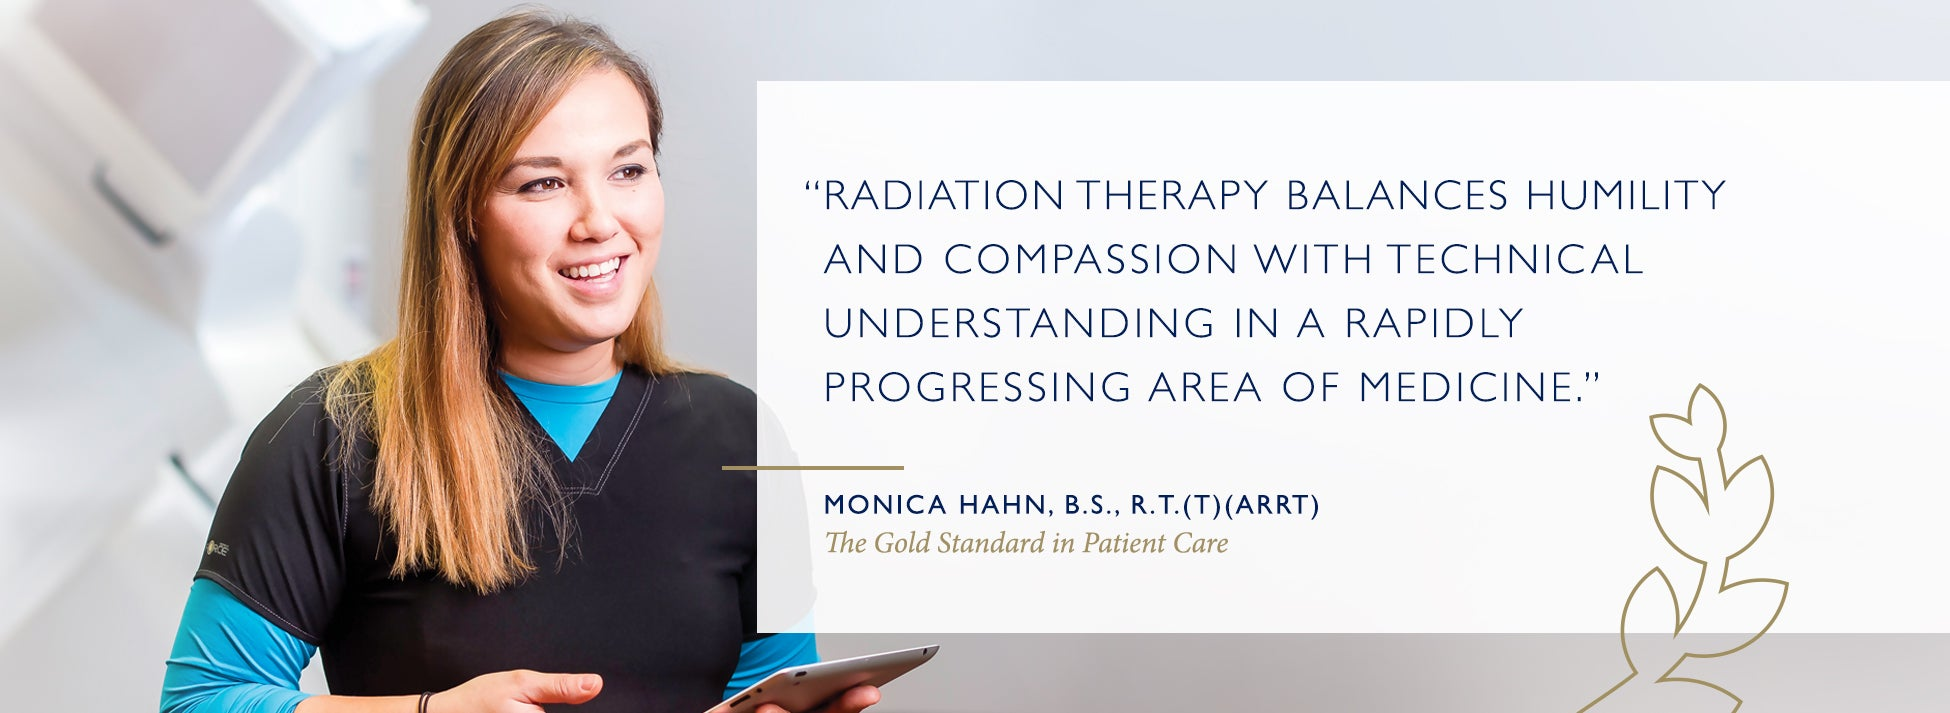 Radiation Therapy balances humility and compassion